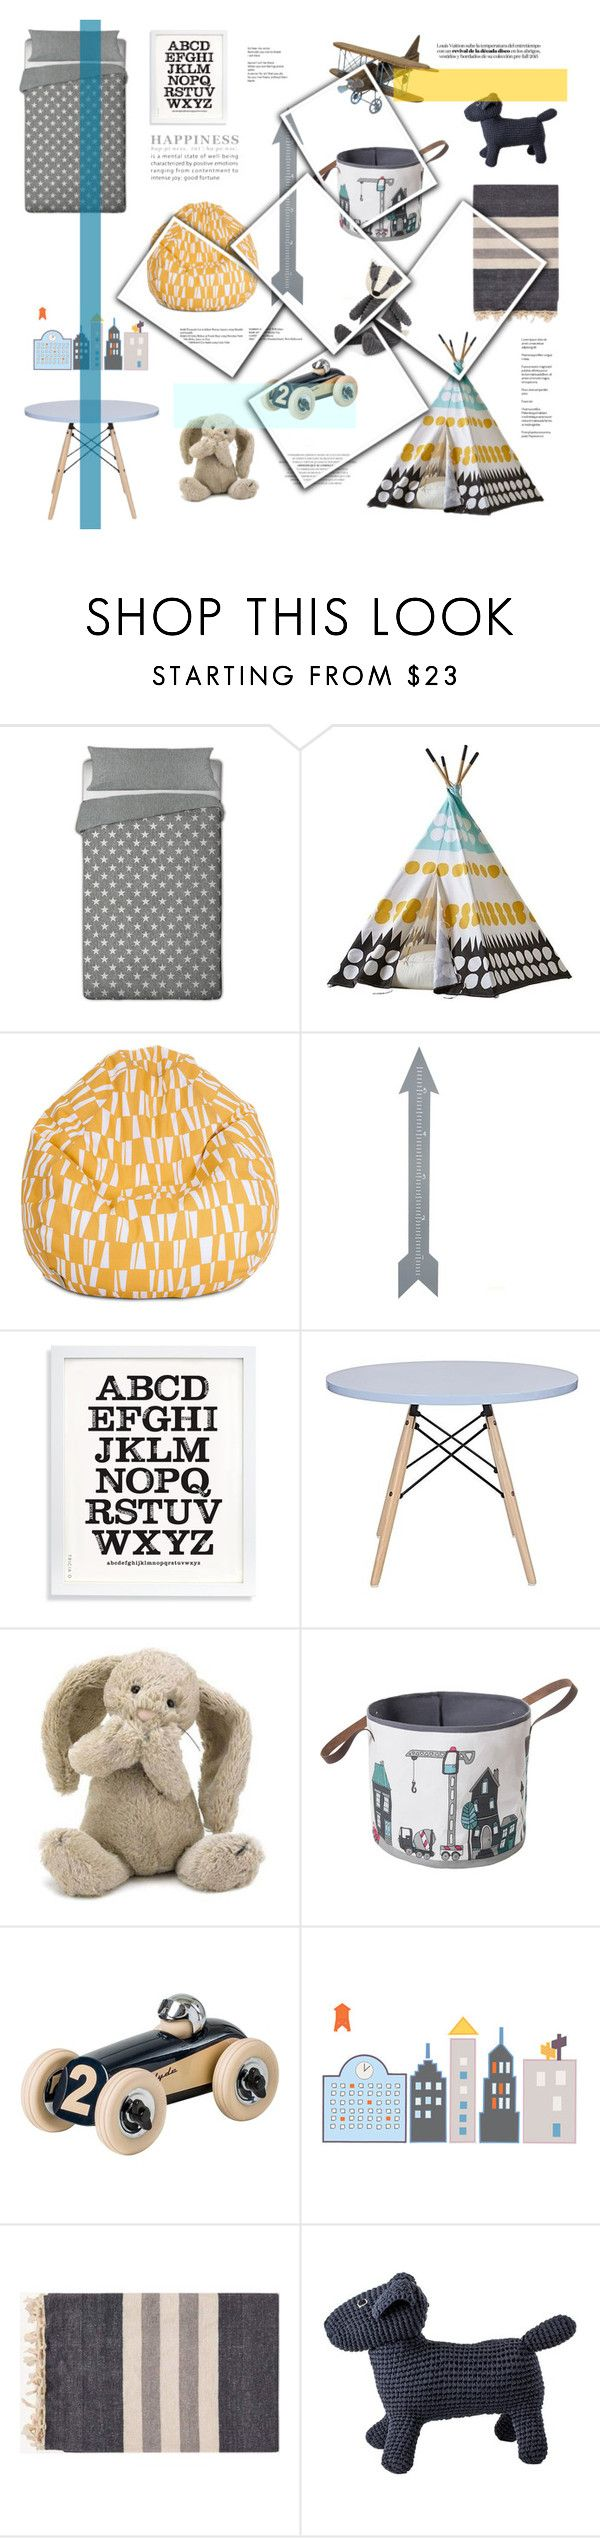 """""""Play space"""" by rheeee on Polyvore featuring interior, interiors, interior design, home, home decor, interior decorating, Dot & Bo, Twelve Timbers, Jellycat and Sebra"""